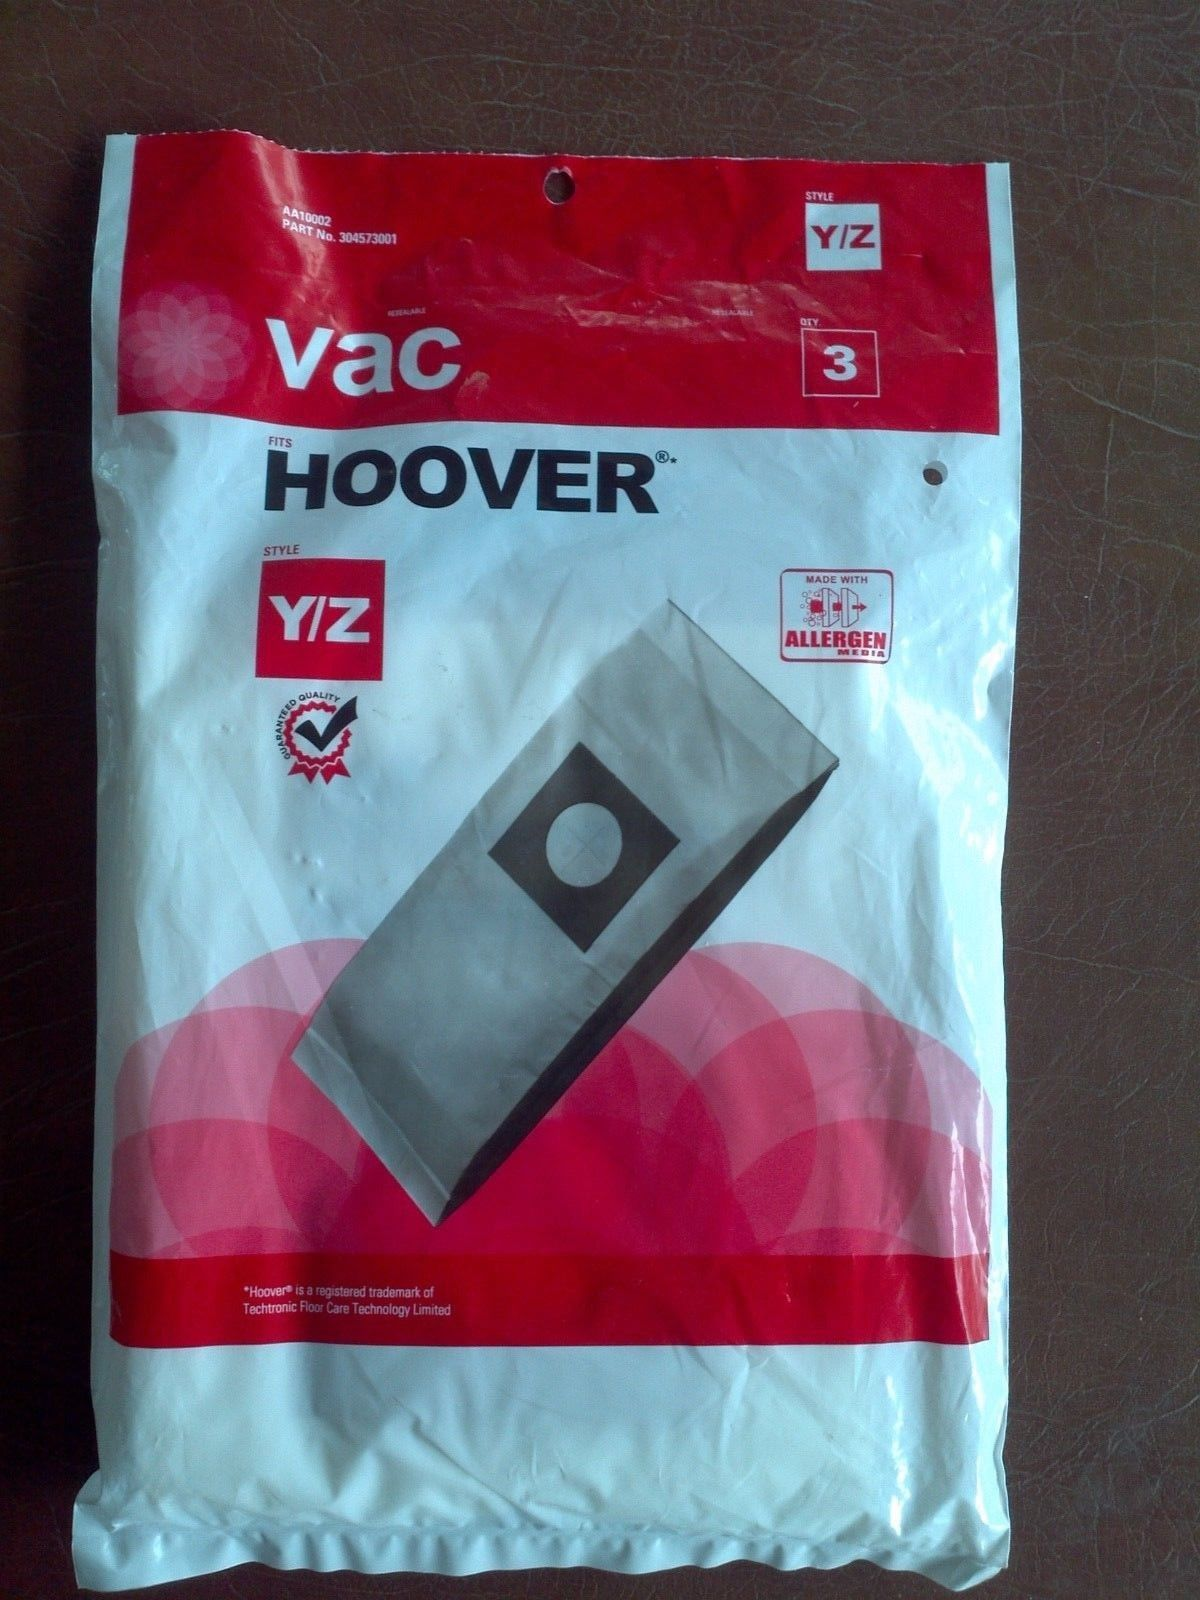 Hoover Upright Type Y/Z Paper Bags 3 Pk Part - AA10002, 304573001 - $11.53